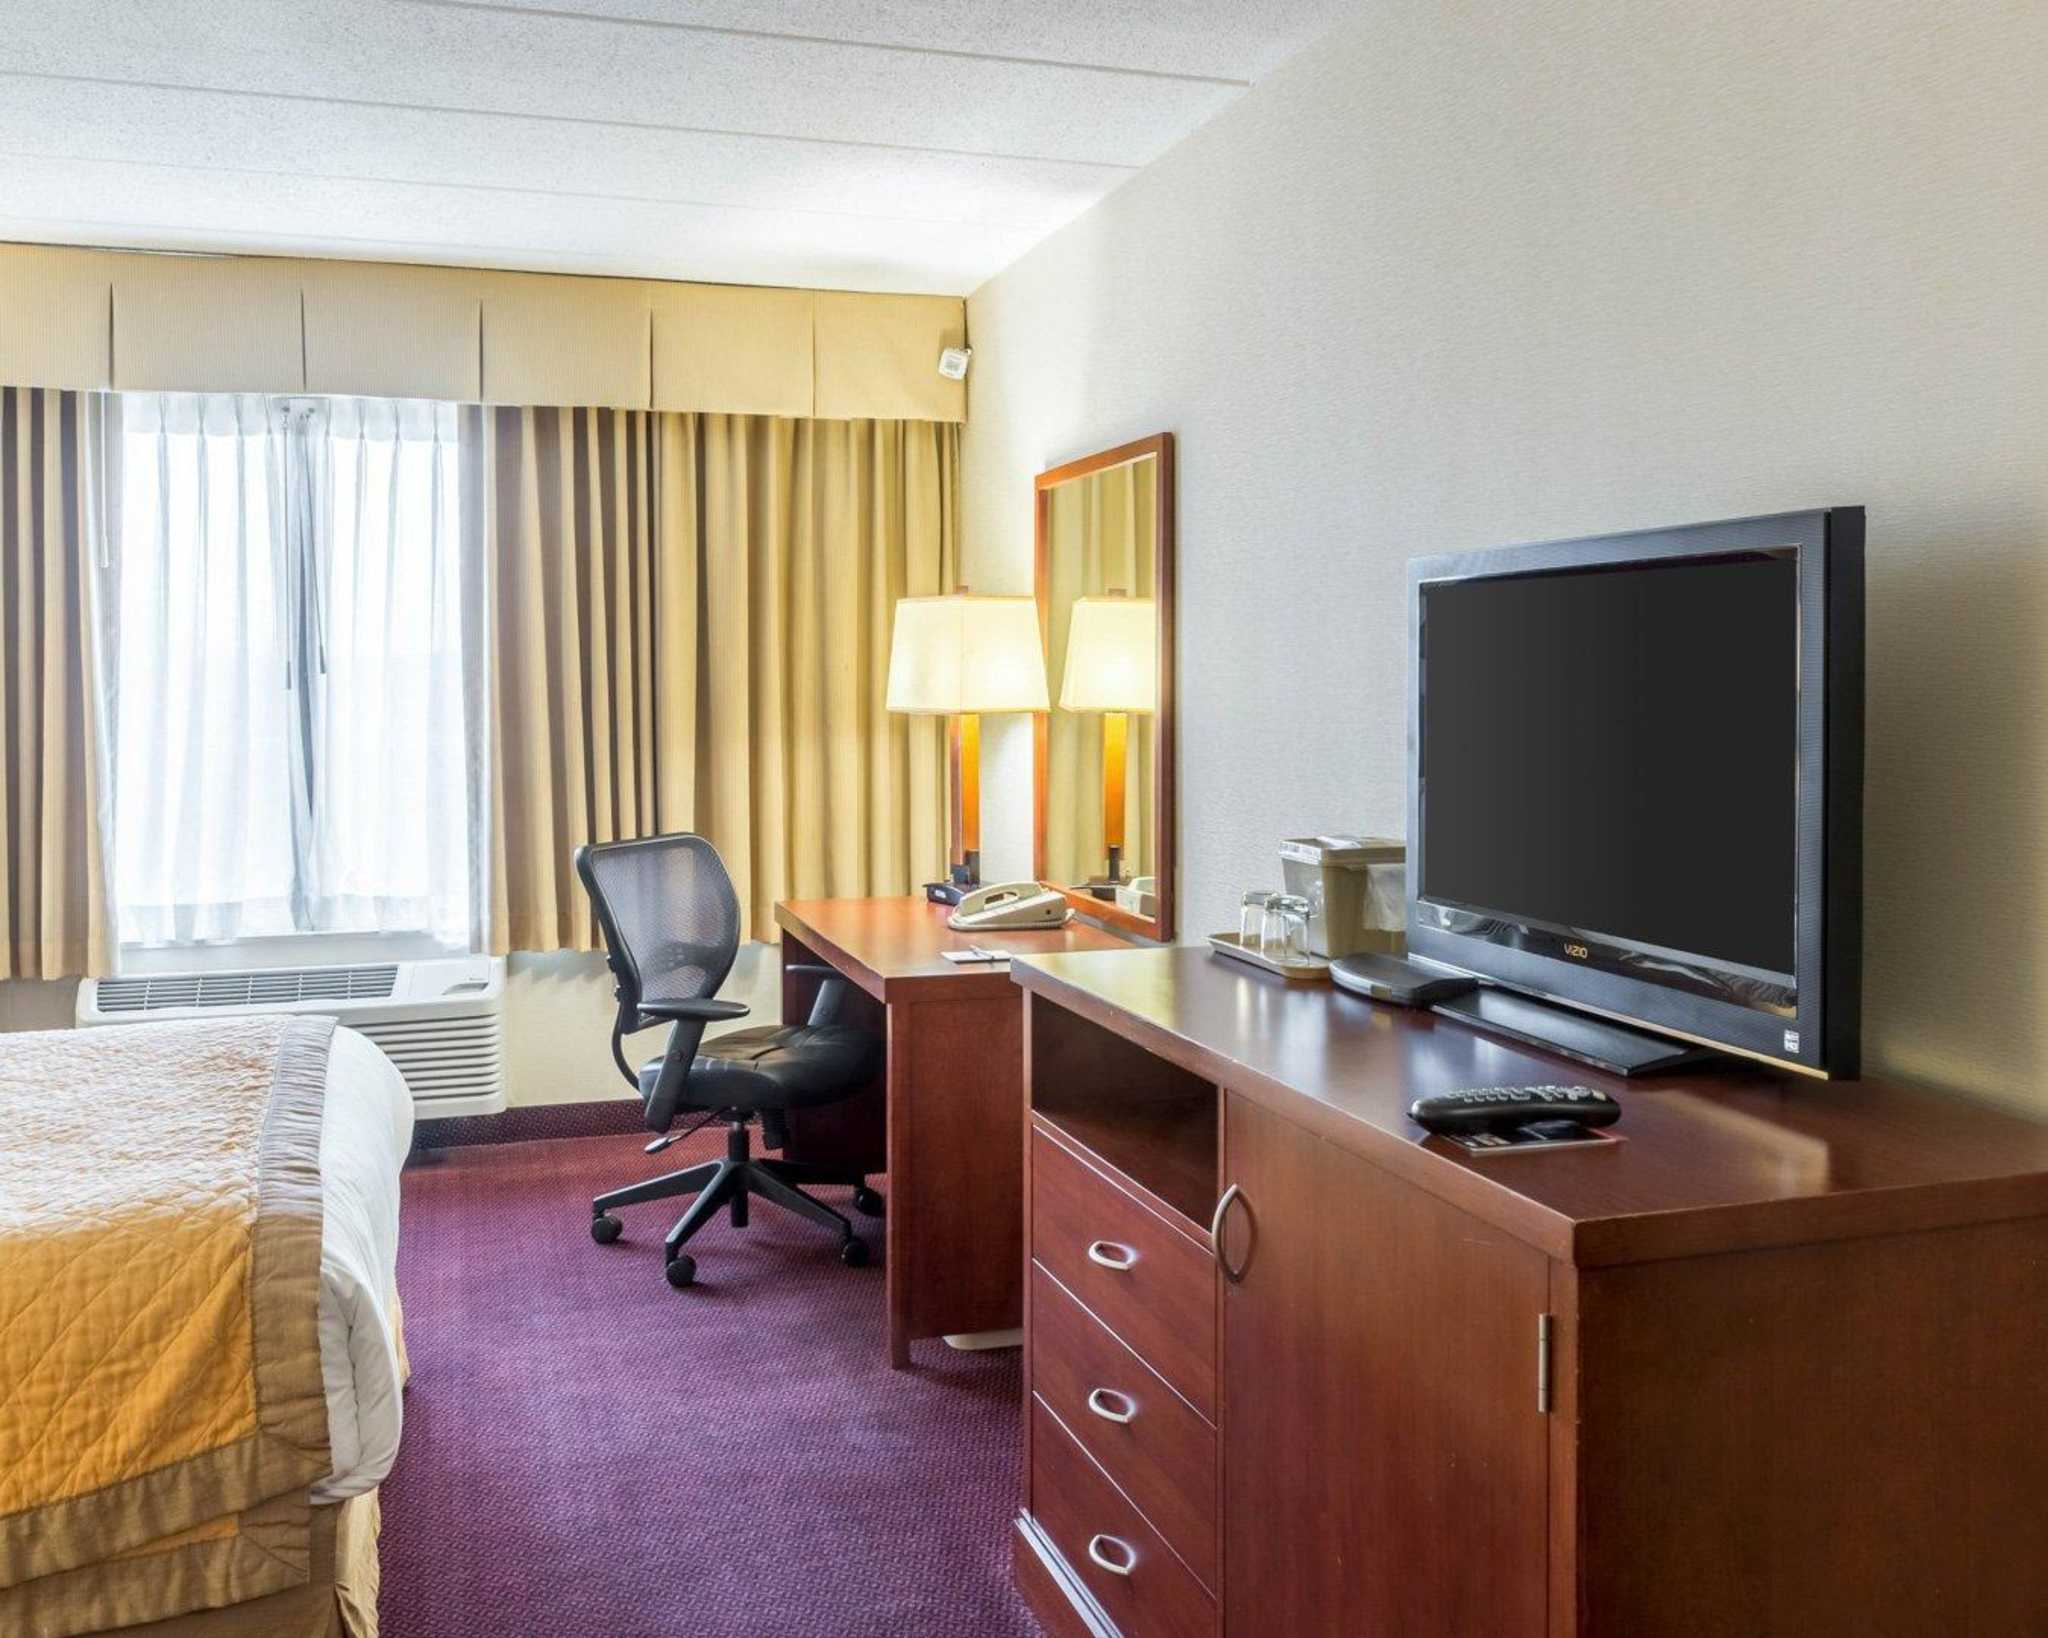 Clarion Hotel image 4